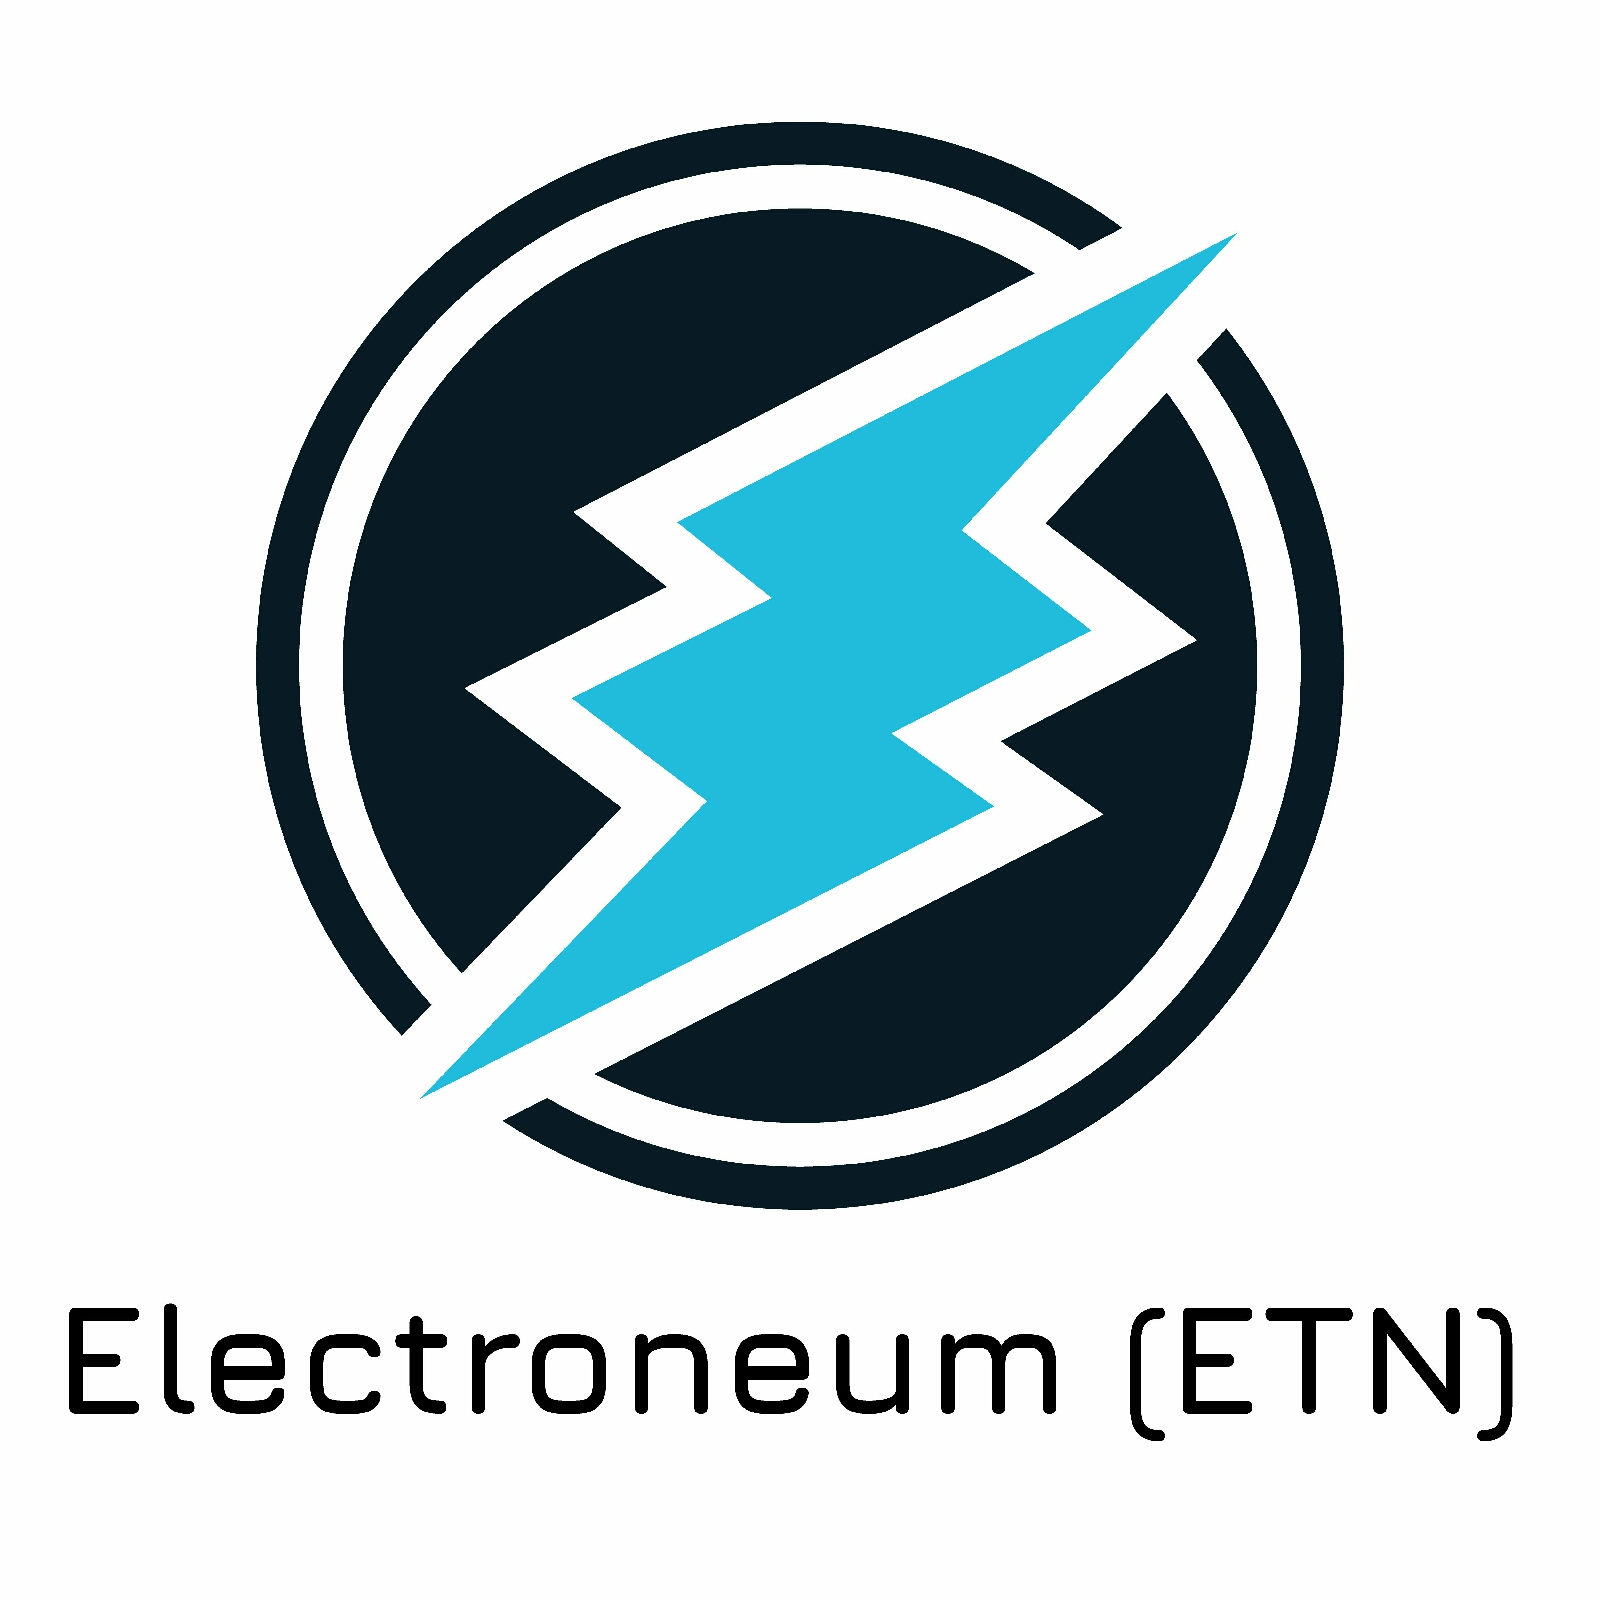 How to get free Electroneum (ETN) in 2020